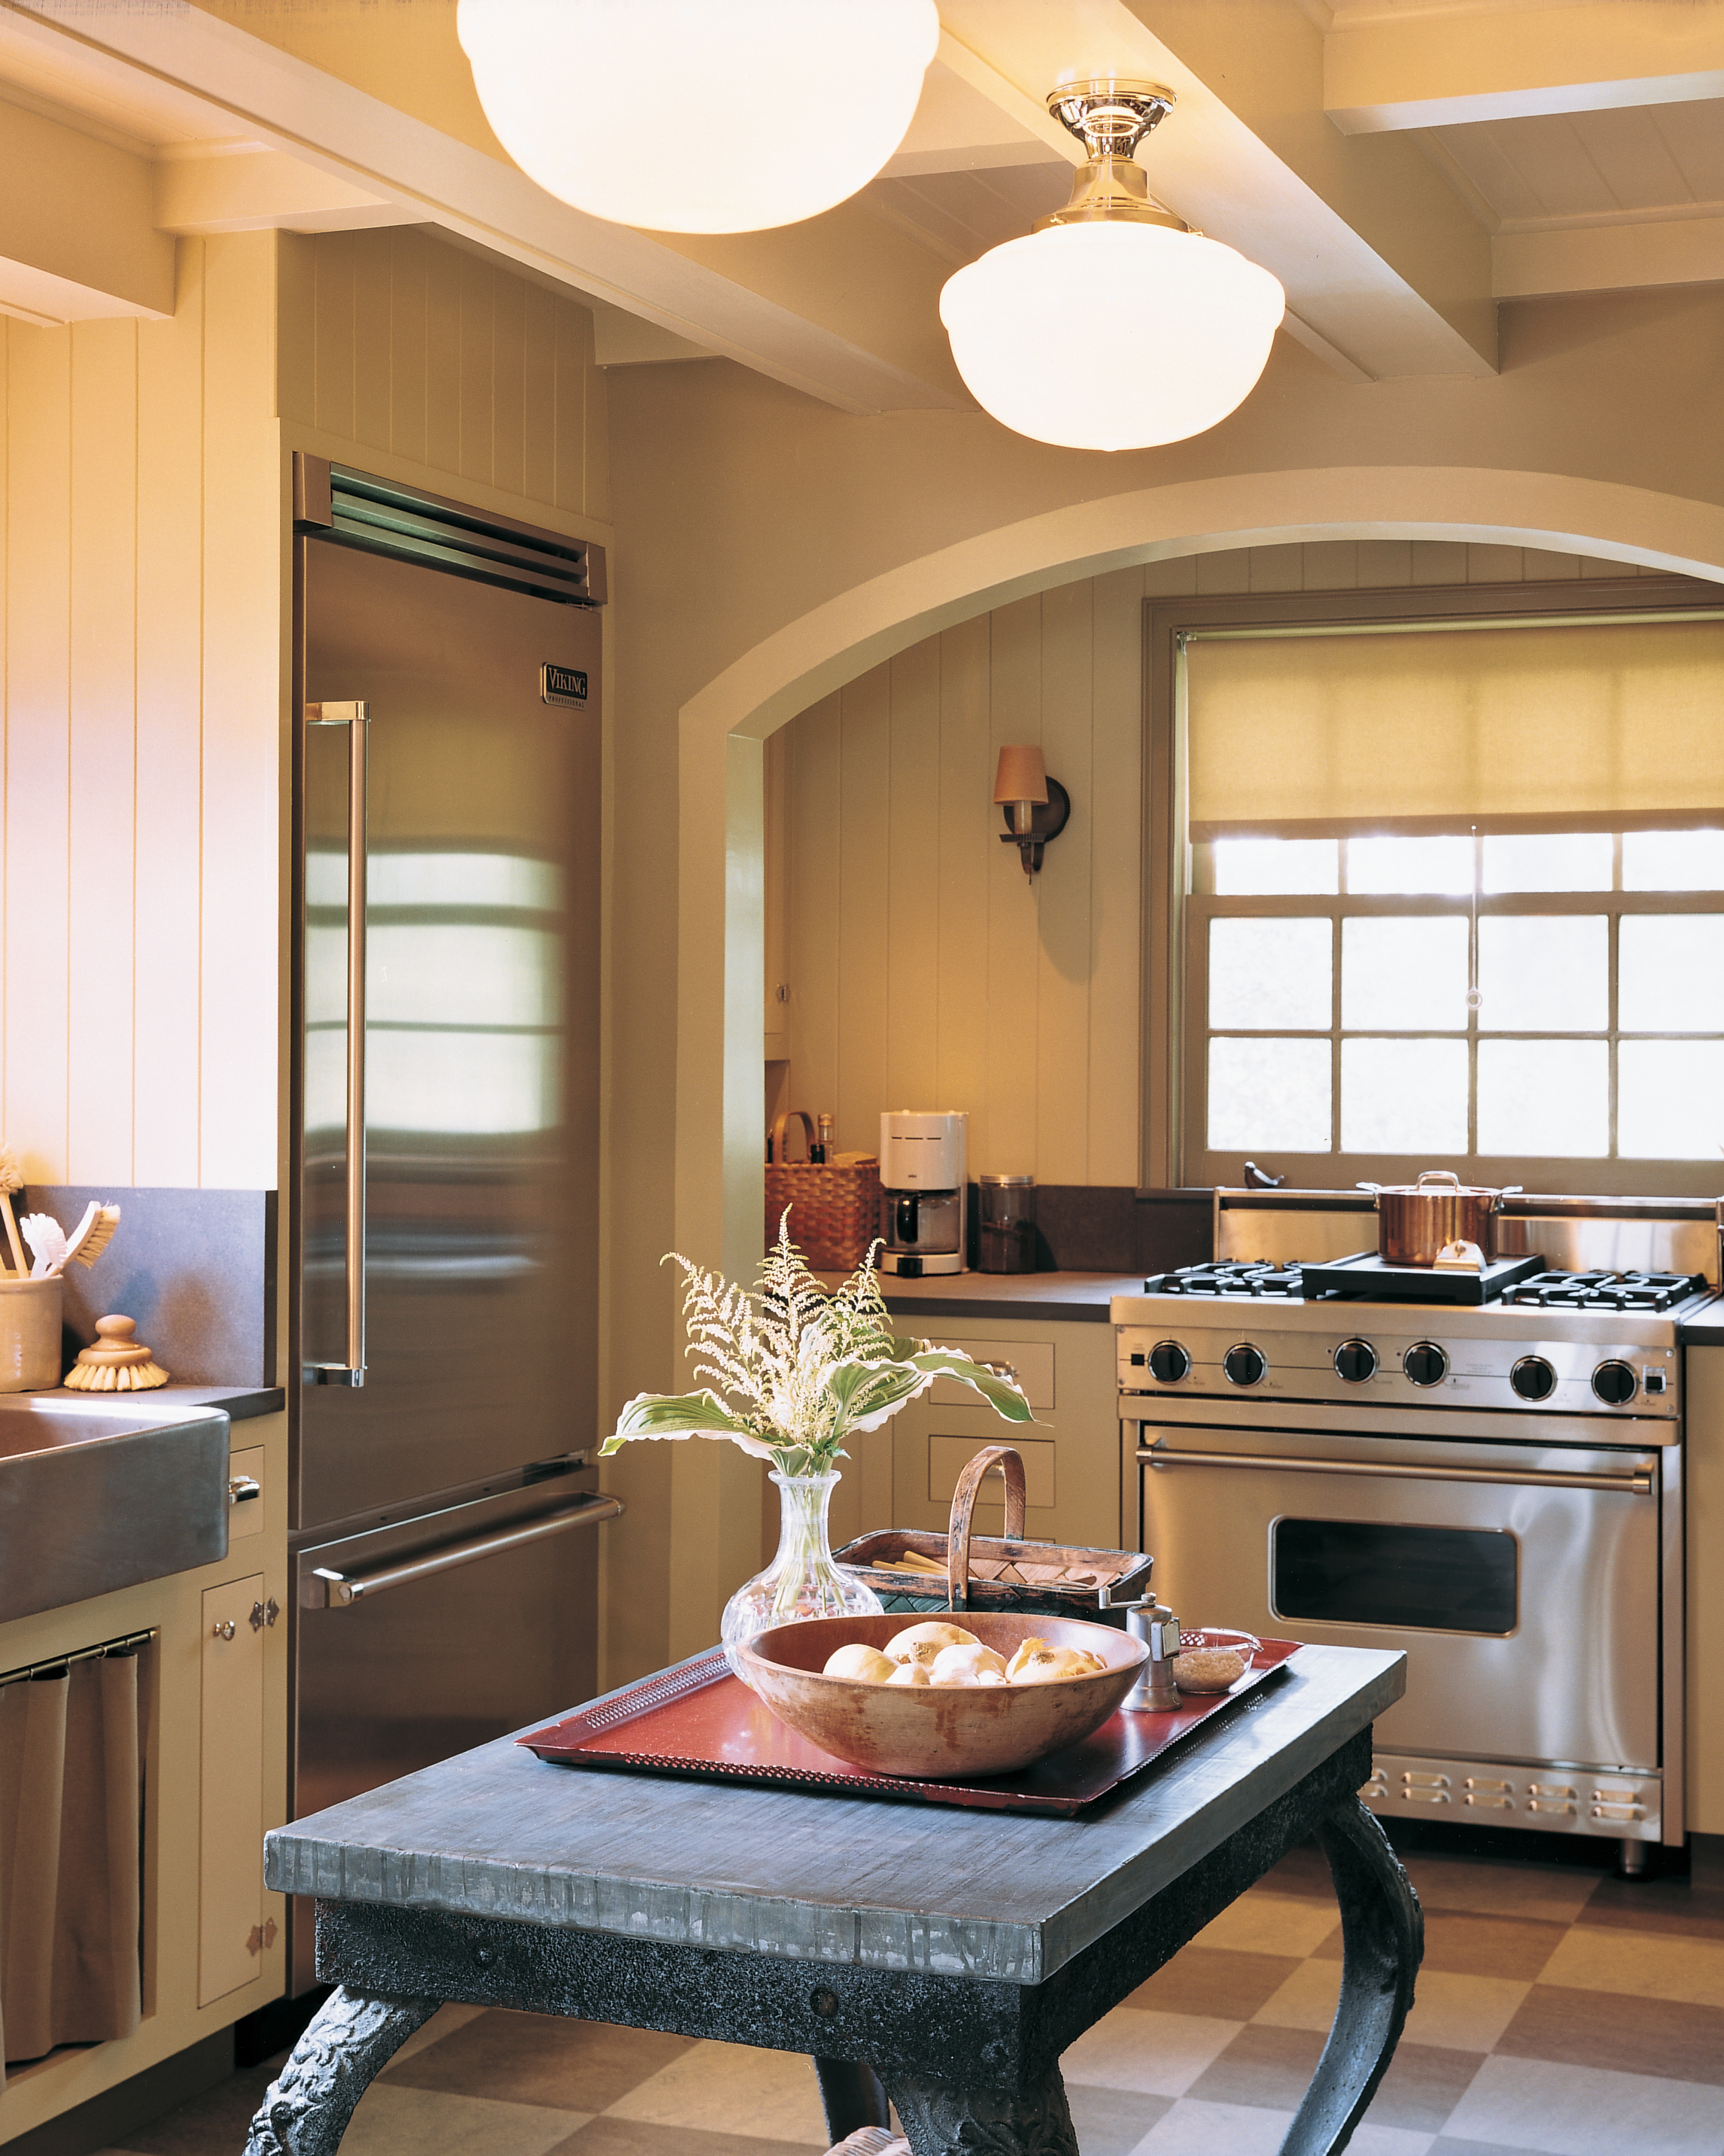 A Major Kitchen Design Makeover with an Updated Sense of Tradition